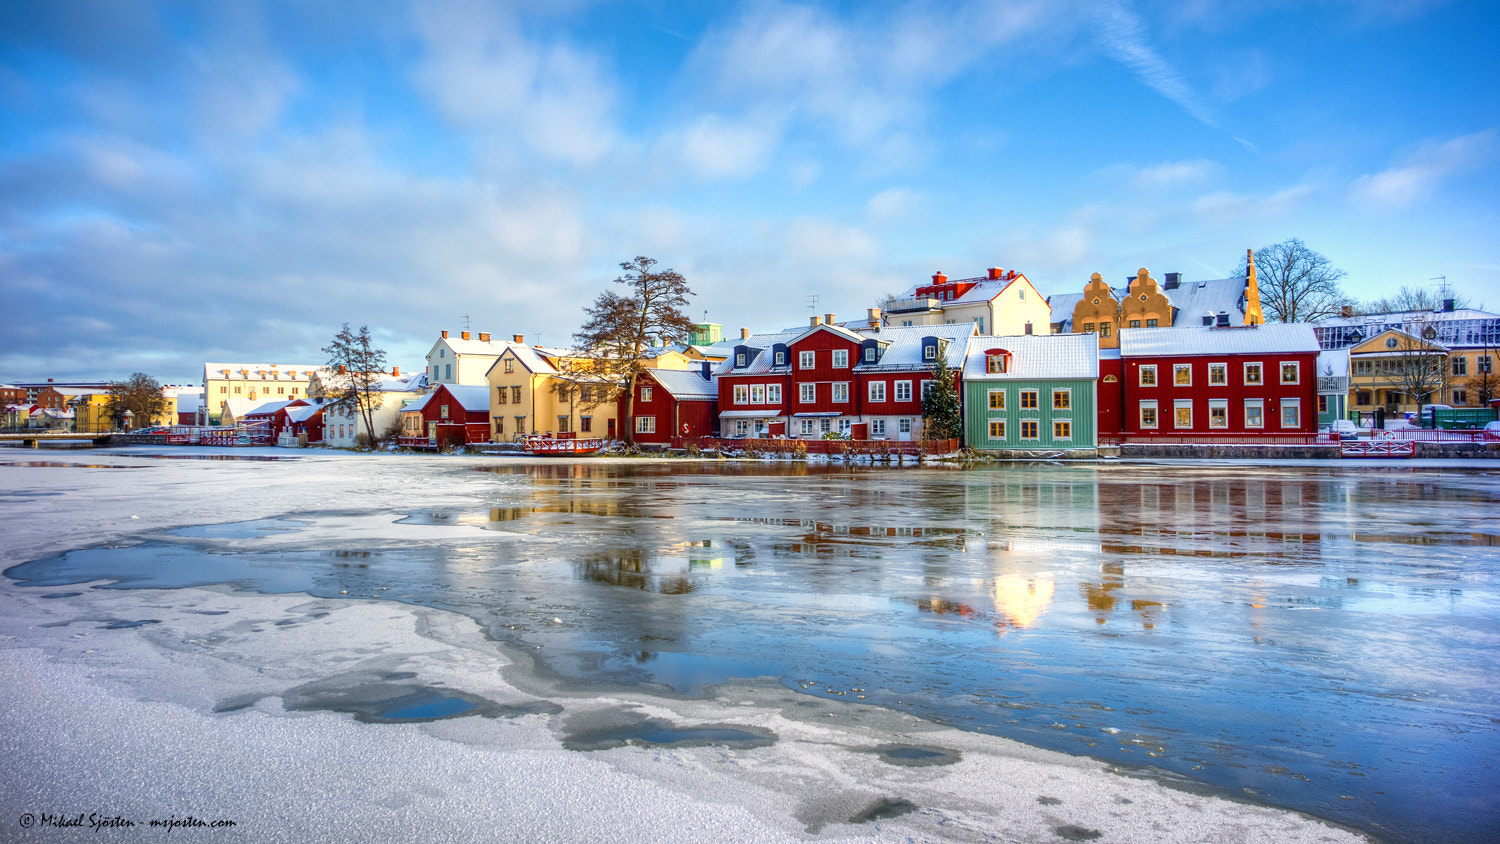 Photograph Winter in old town by Mikael Sjösten on 500px